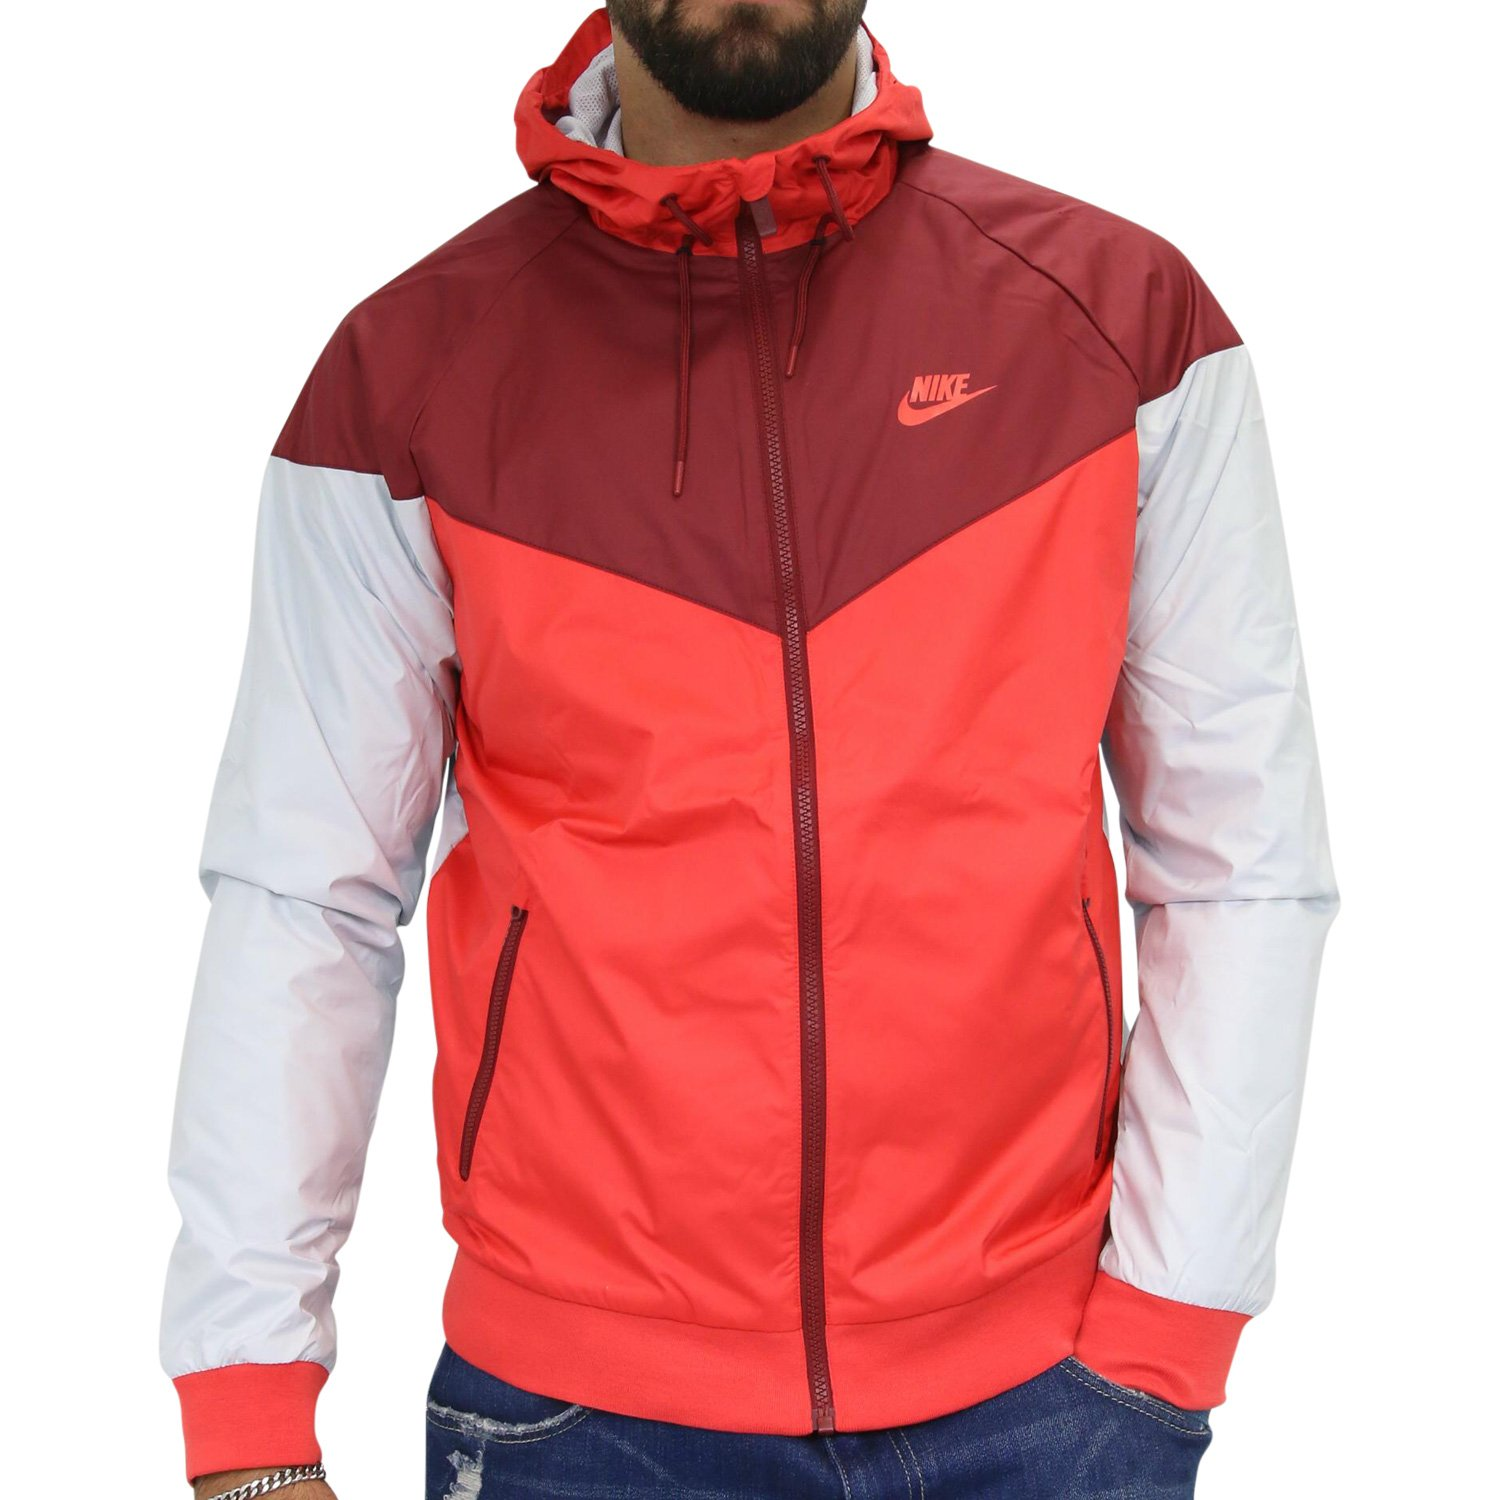 Galleon - Nike Mens Windrunner Hooded Track Jacket Track Red Team Red  White  727324-602 Size 2X-Large 66860485c